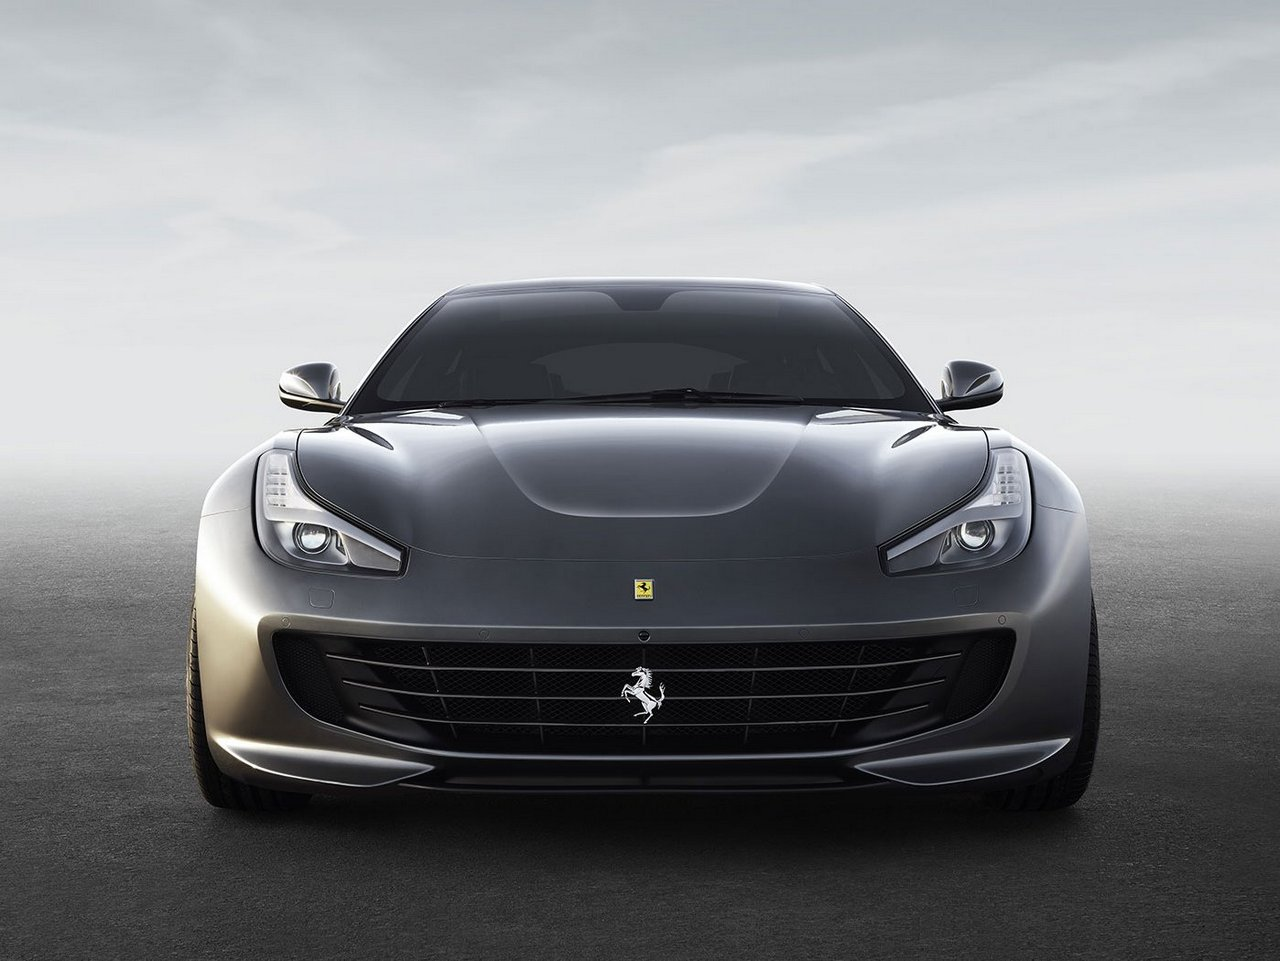 Four-wheel drive concept car Lusso Ferrari GTC4 01